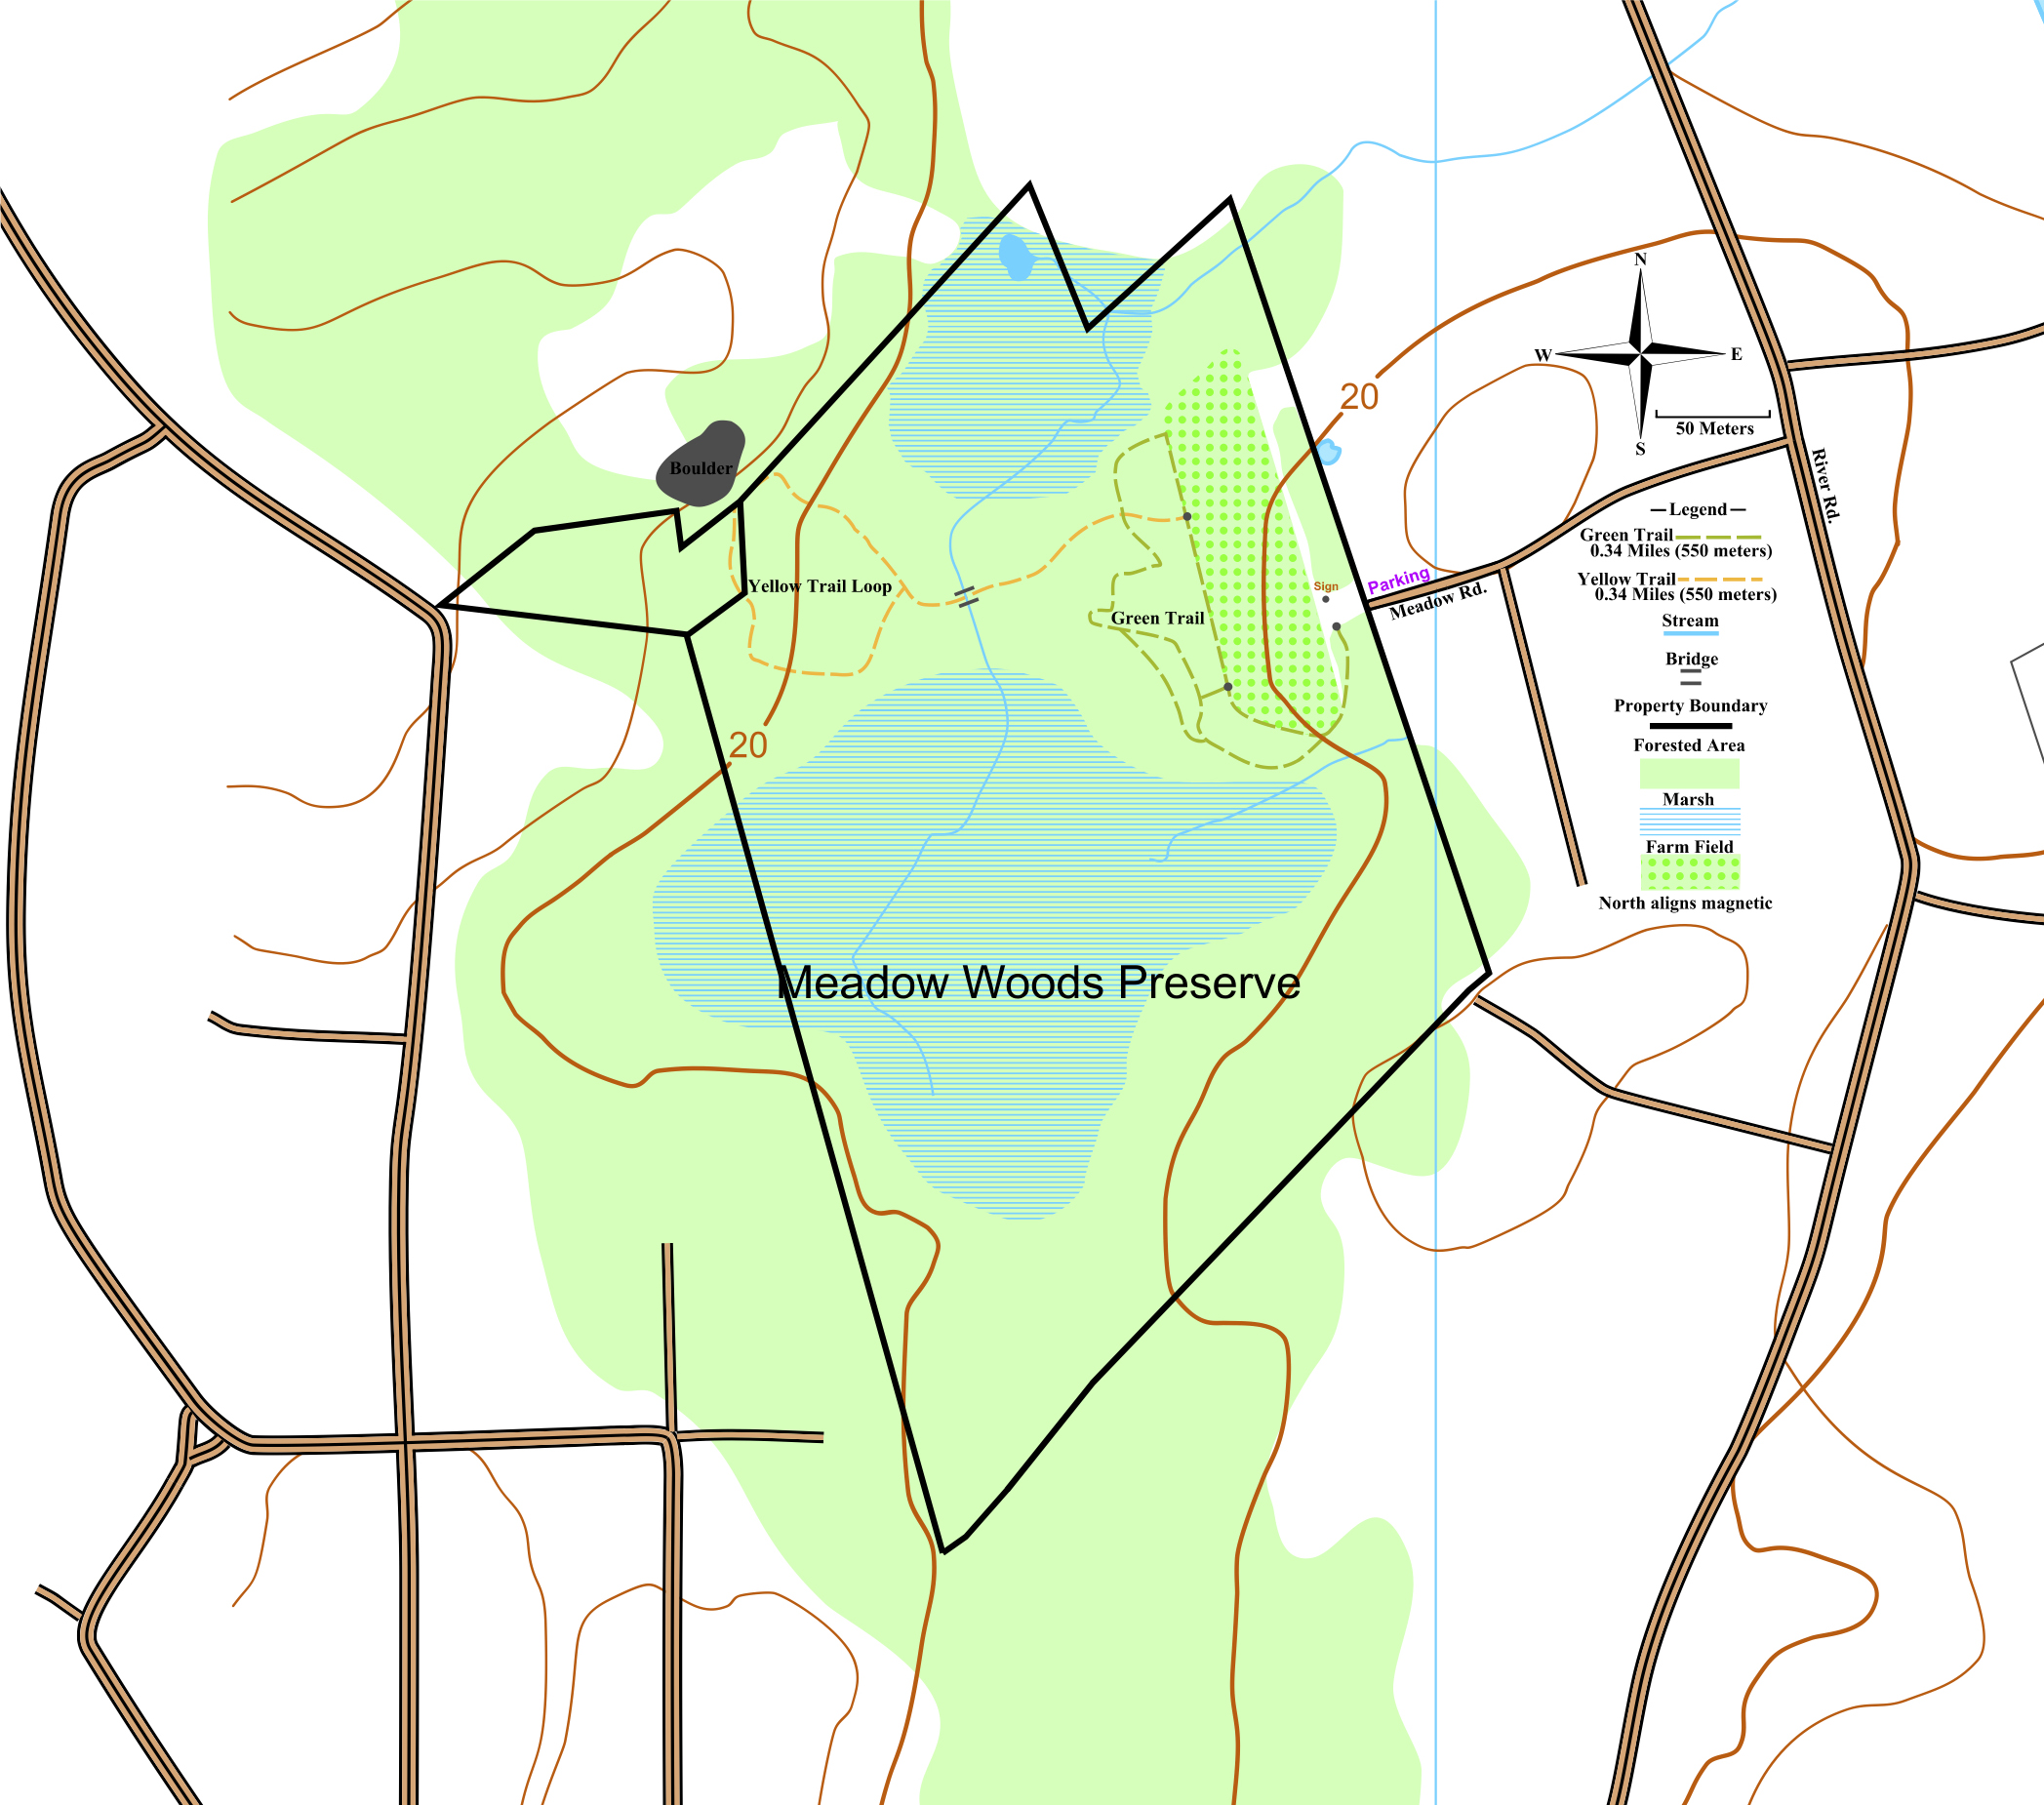 slt meadow woods preserve eagle scout map by alton jonesEAGLE SCOUT PROJECT, Presere Map Created by Alton Jones, Final, Received 2-7-2017 copy.jpg